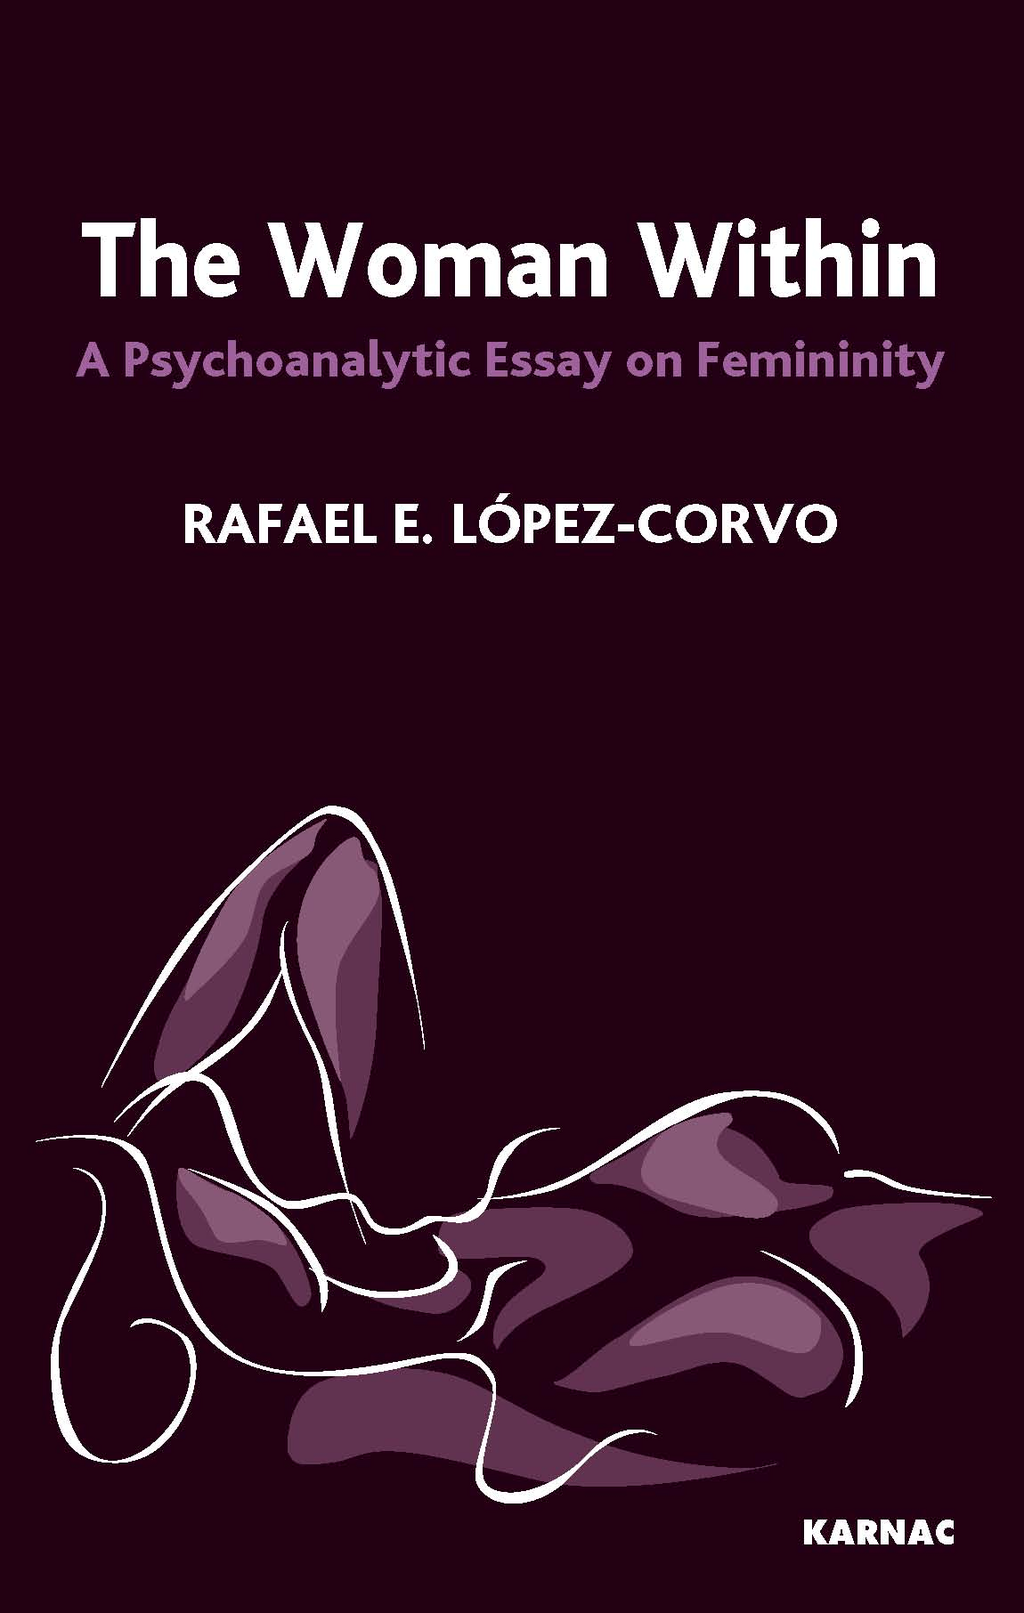 The Woman Within: A Psychoanalytic Essay on Femininity